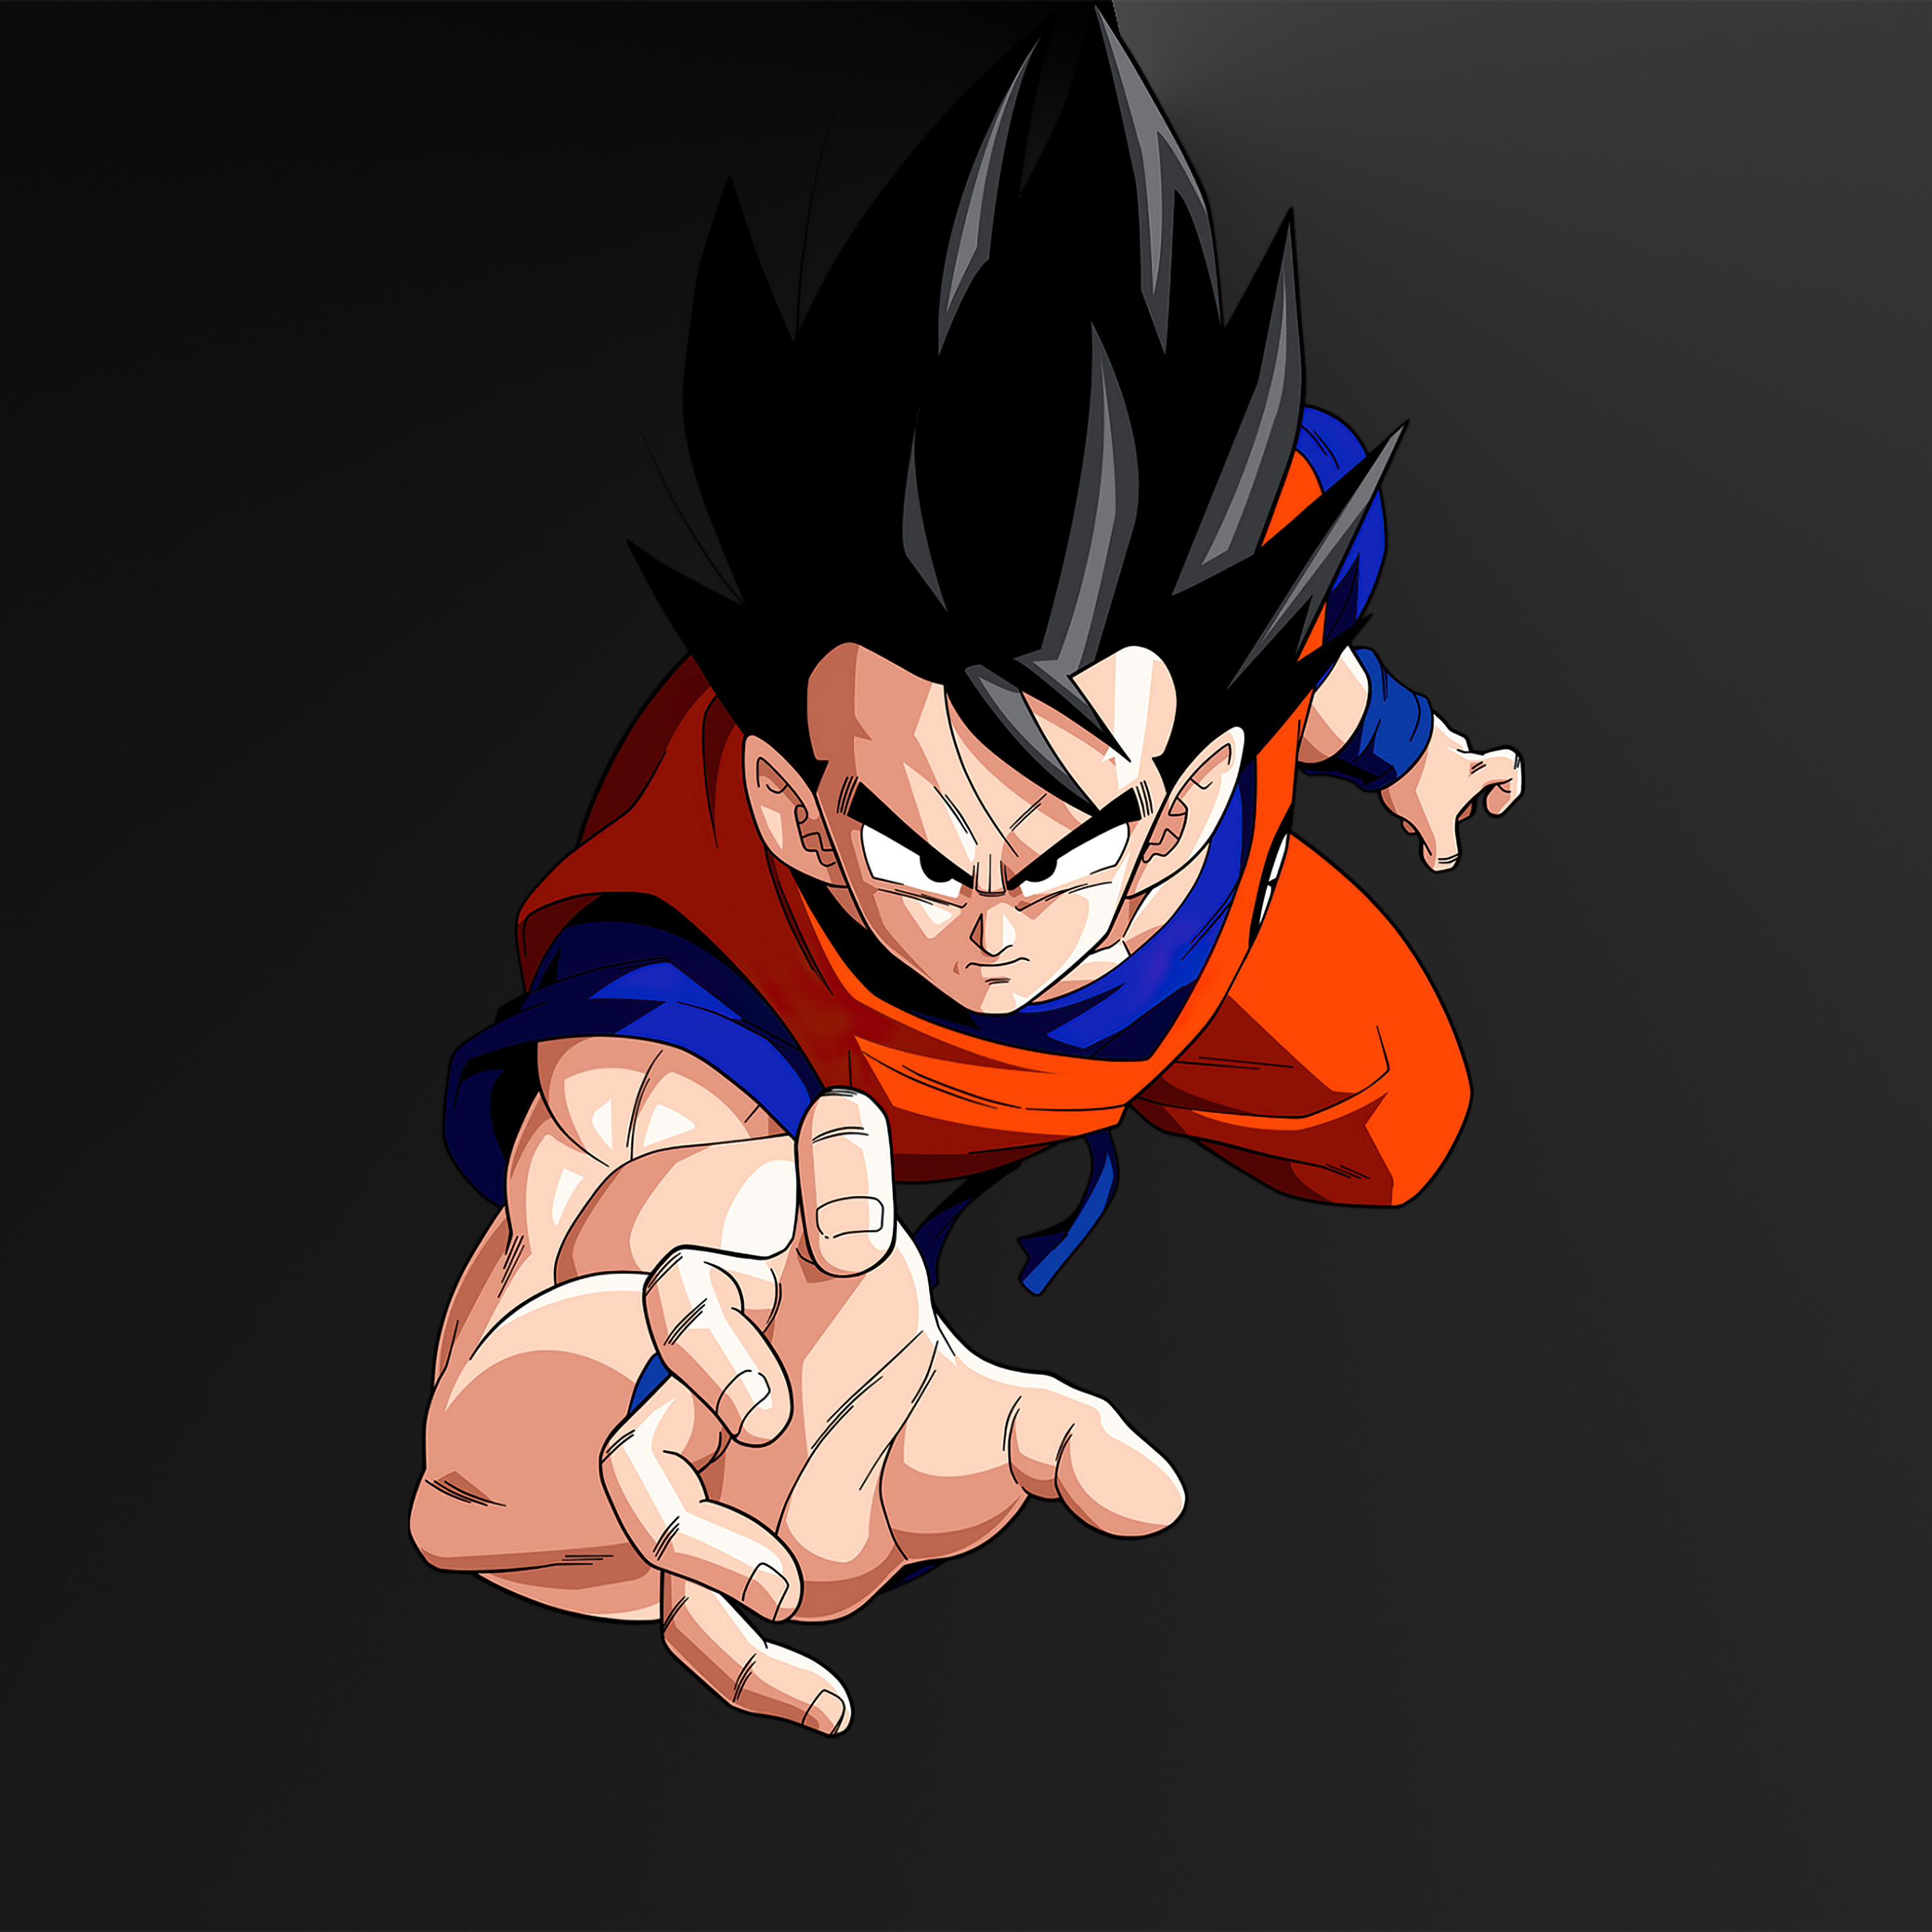 4K Goku Minimal Wallpaper in 2932x2932 Resolution